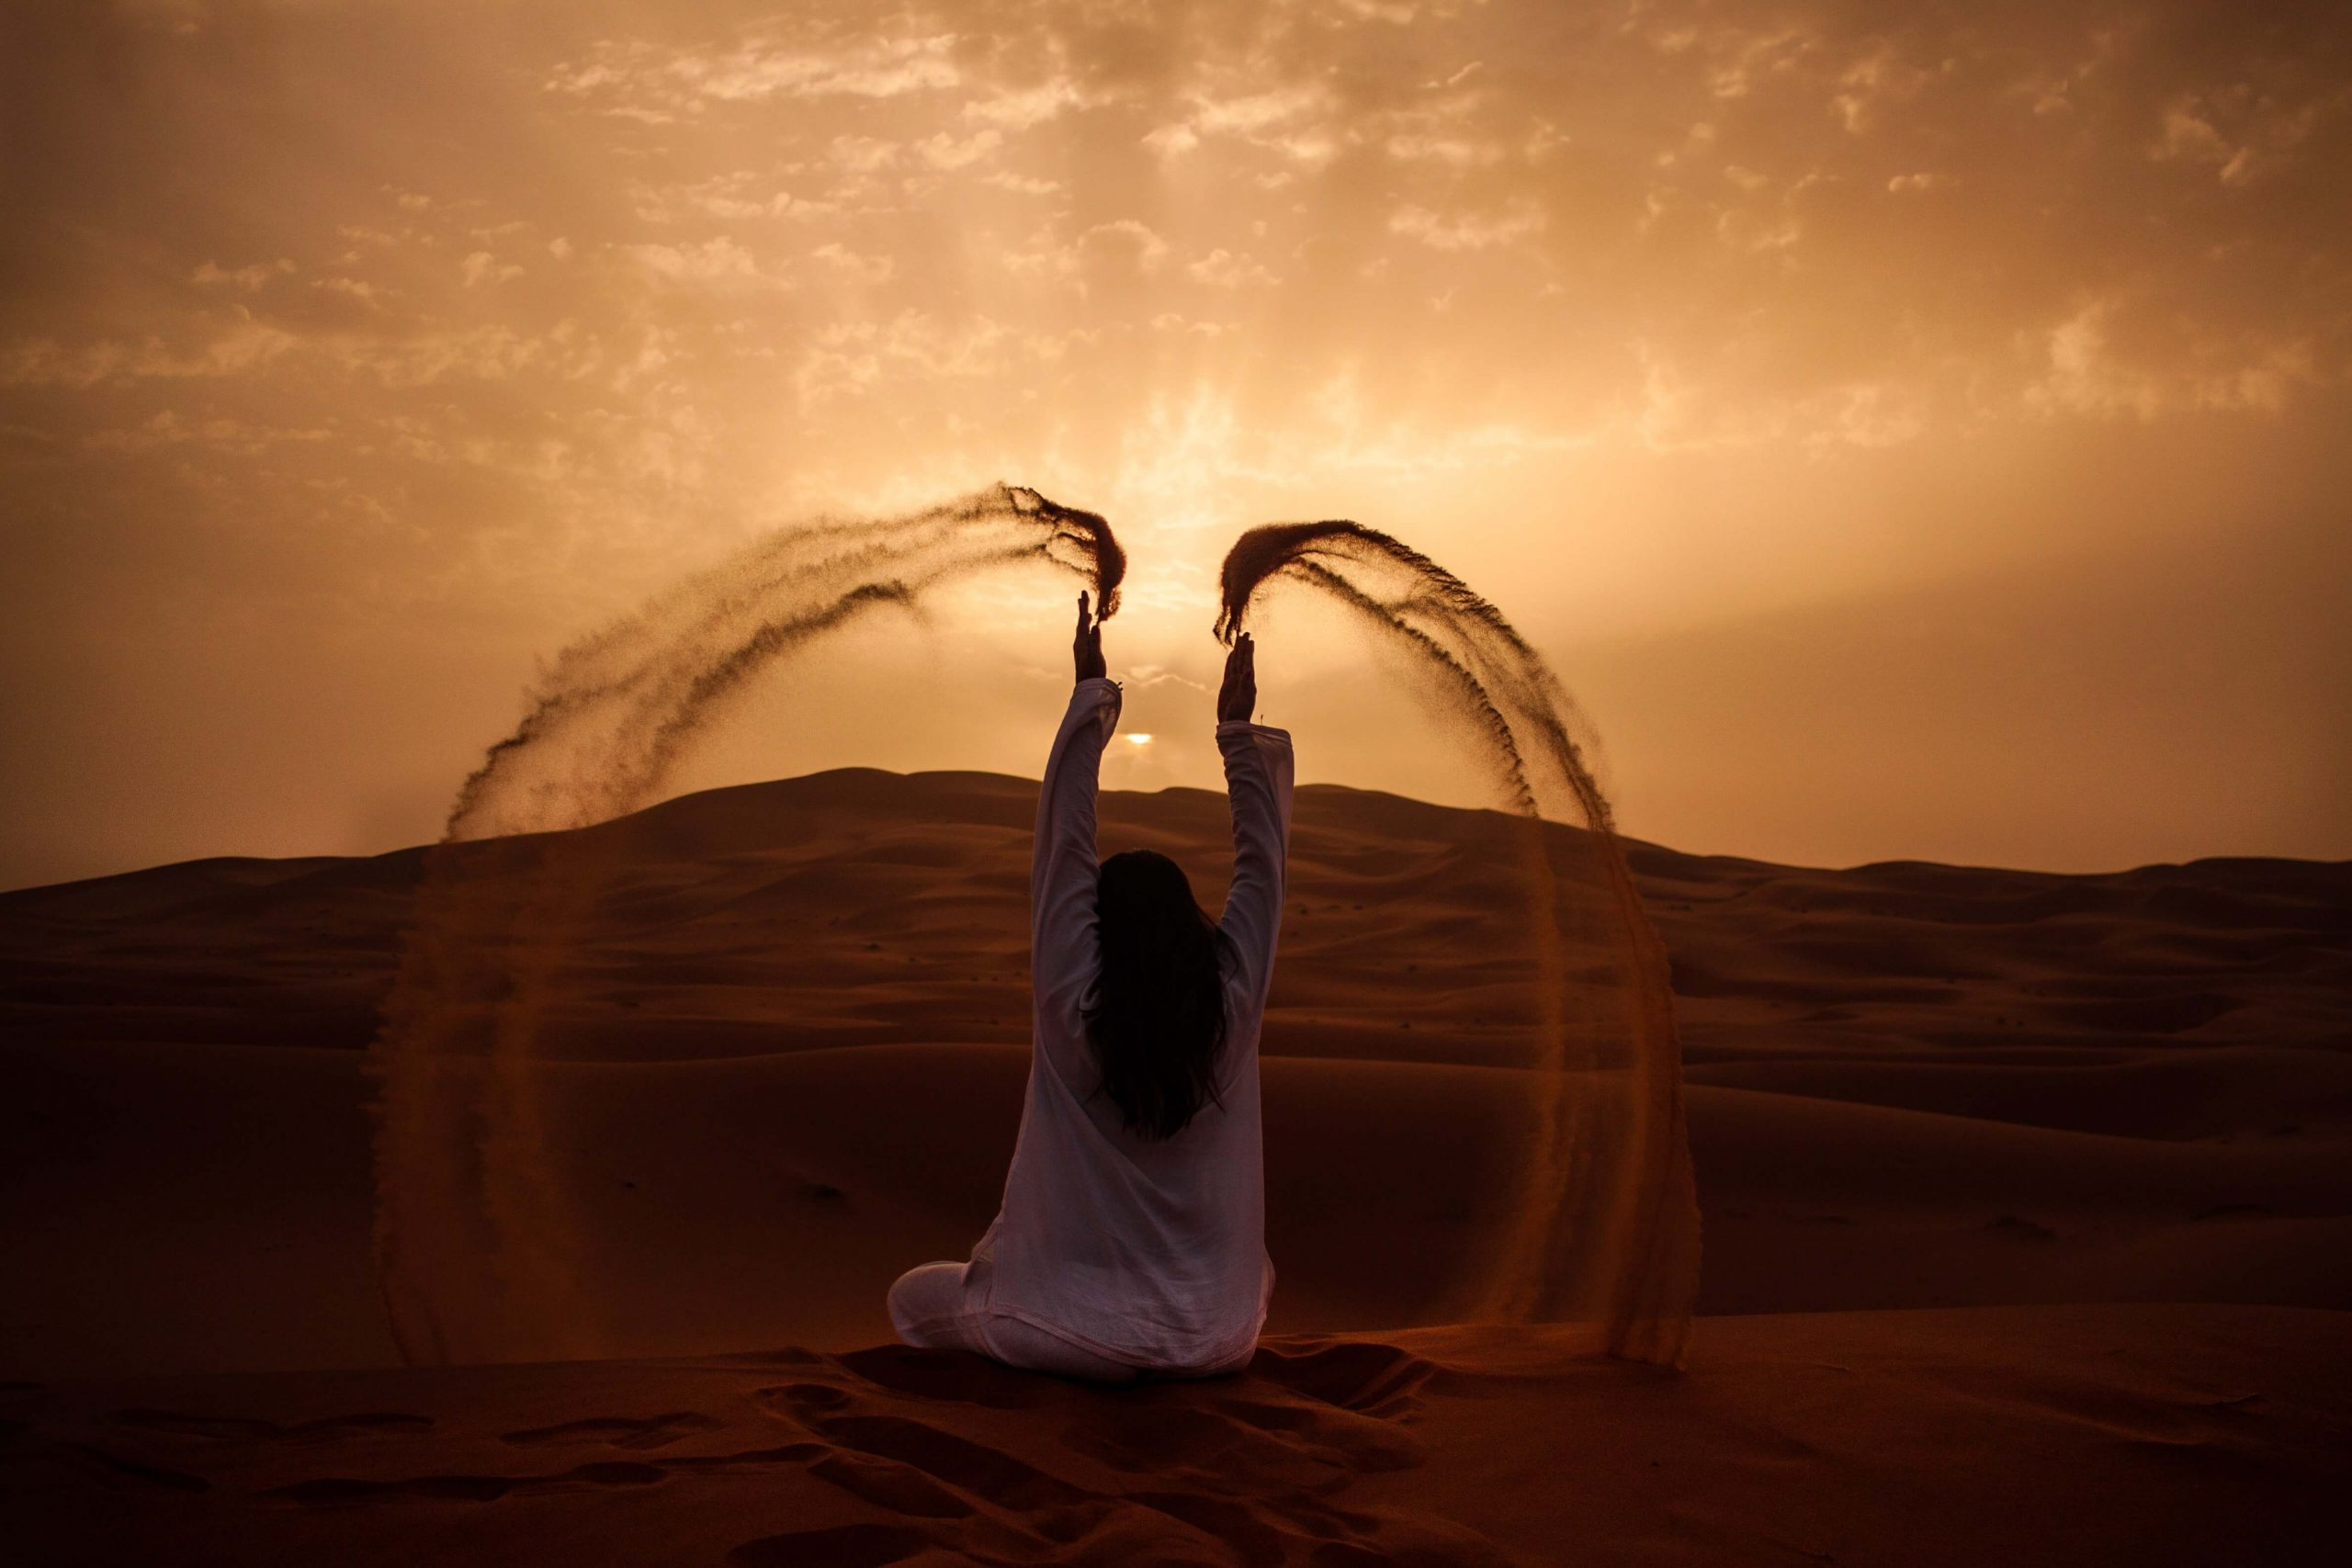 a lady sitting on a sand dune throwing sand into the airt